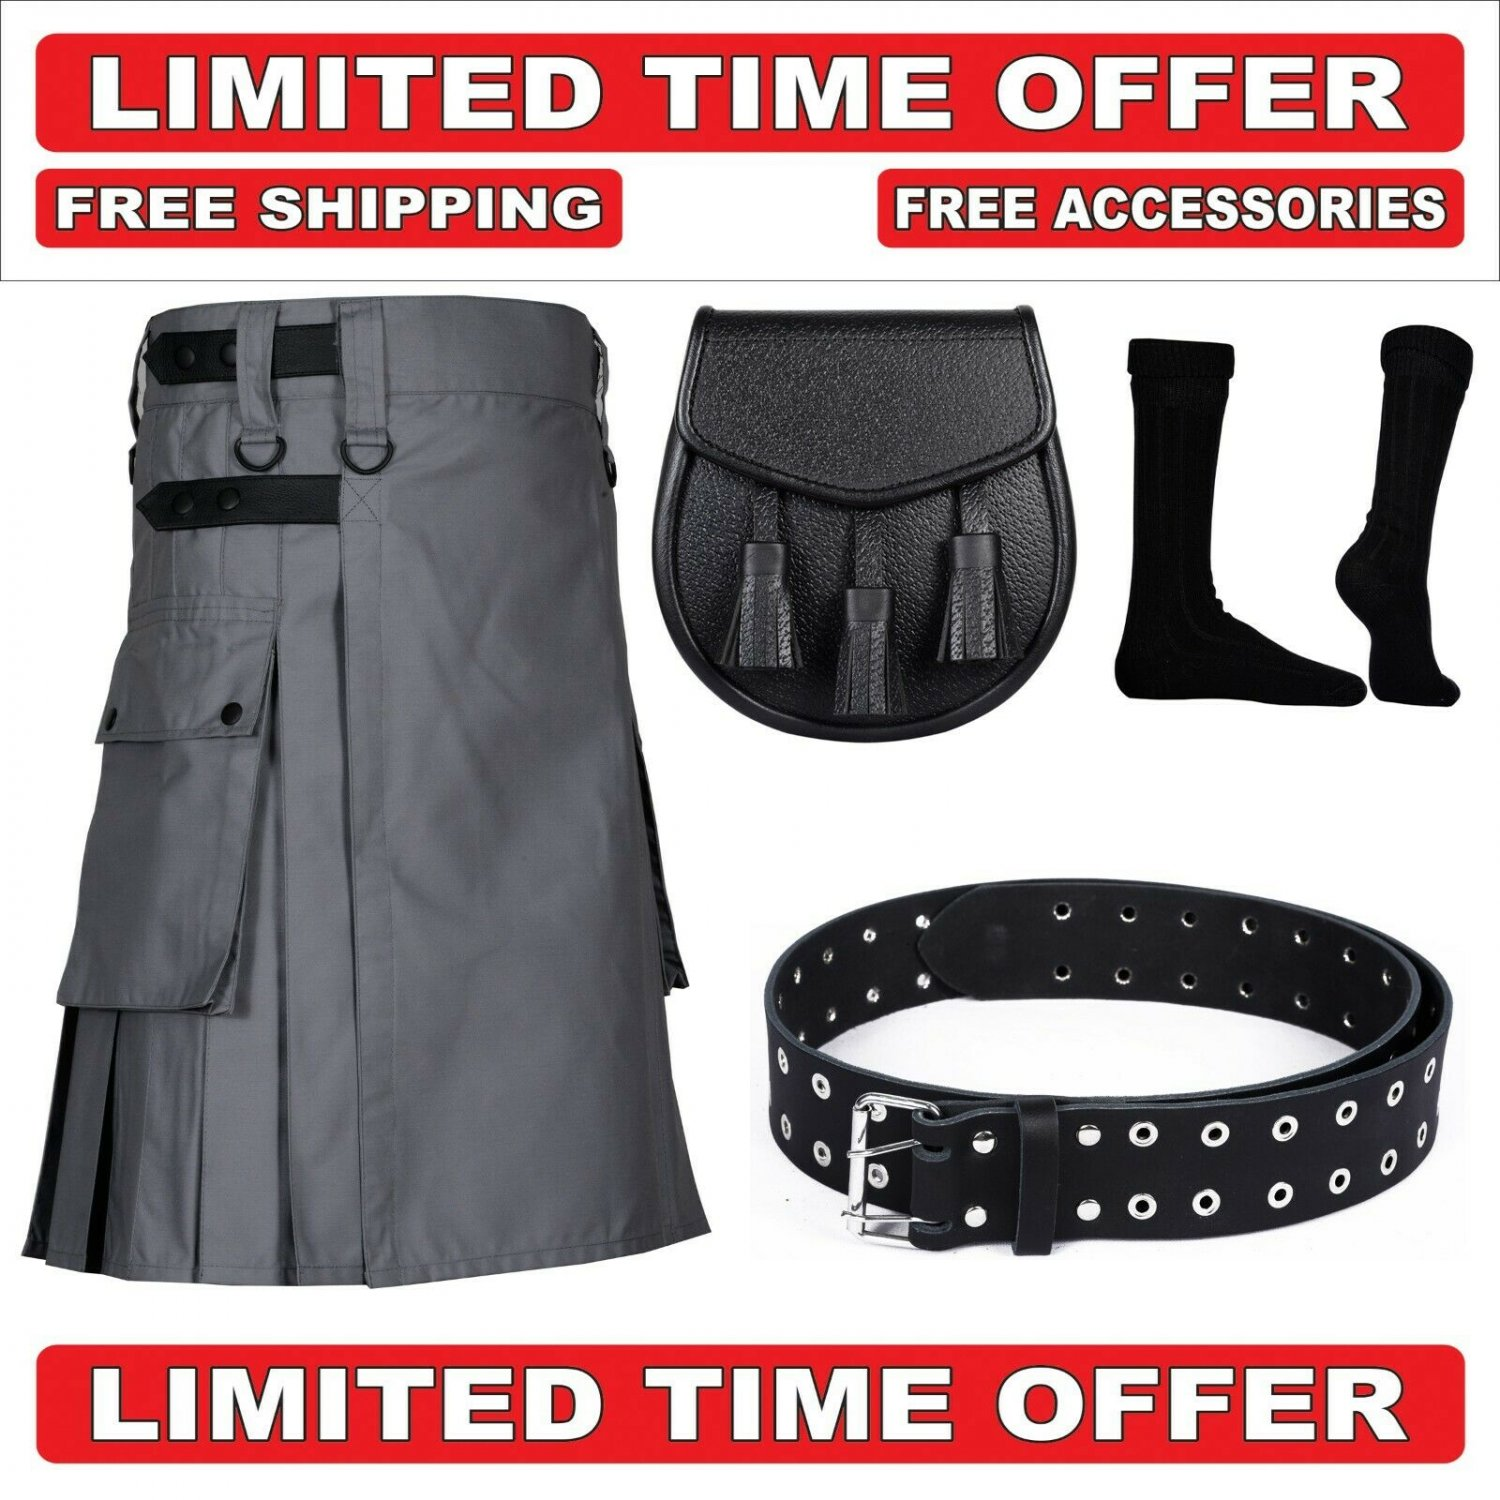 50 size grey Men's Cotton Utility Scottish Kilt With Free Accessories and Free Shipping